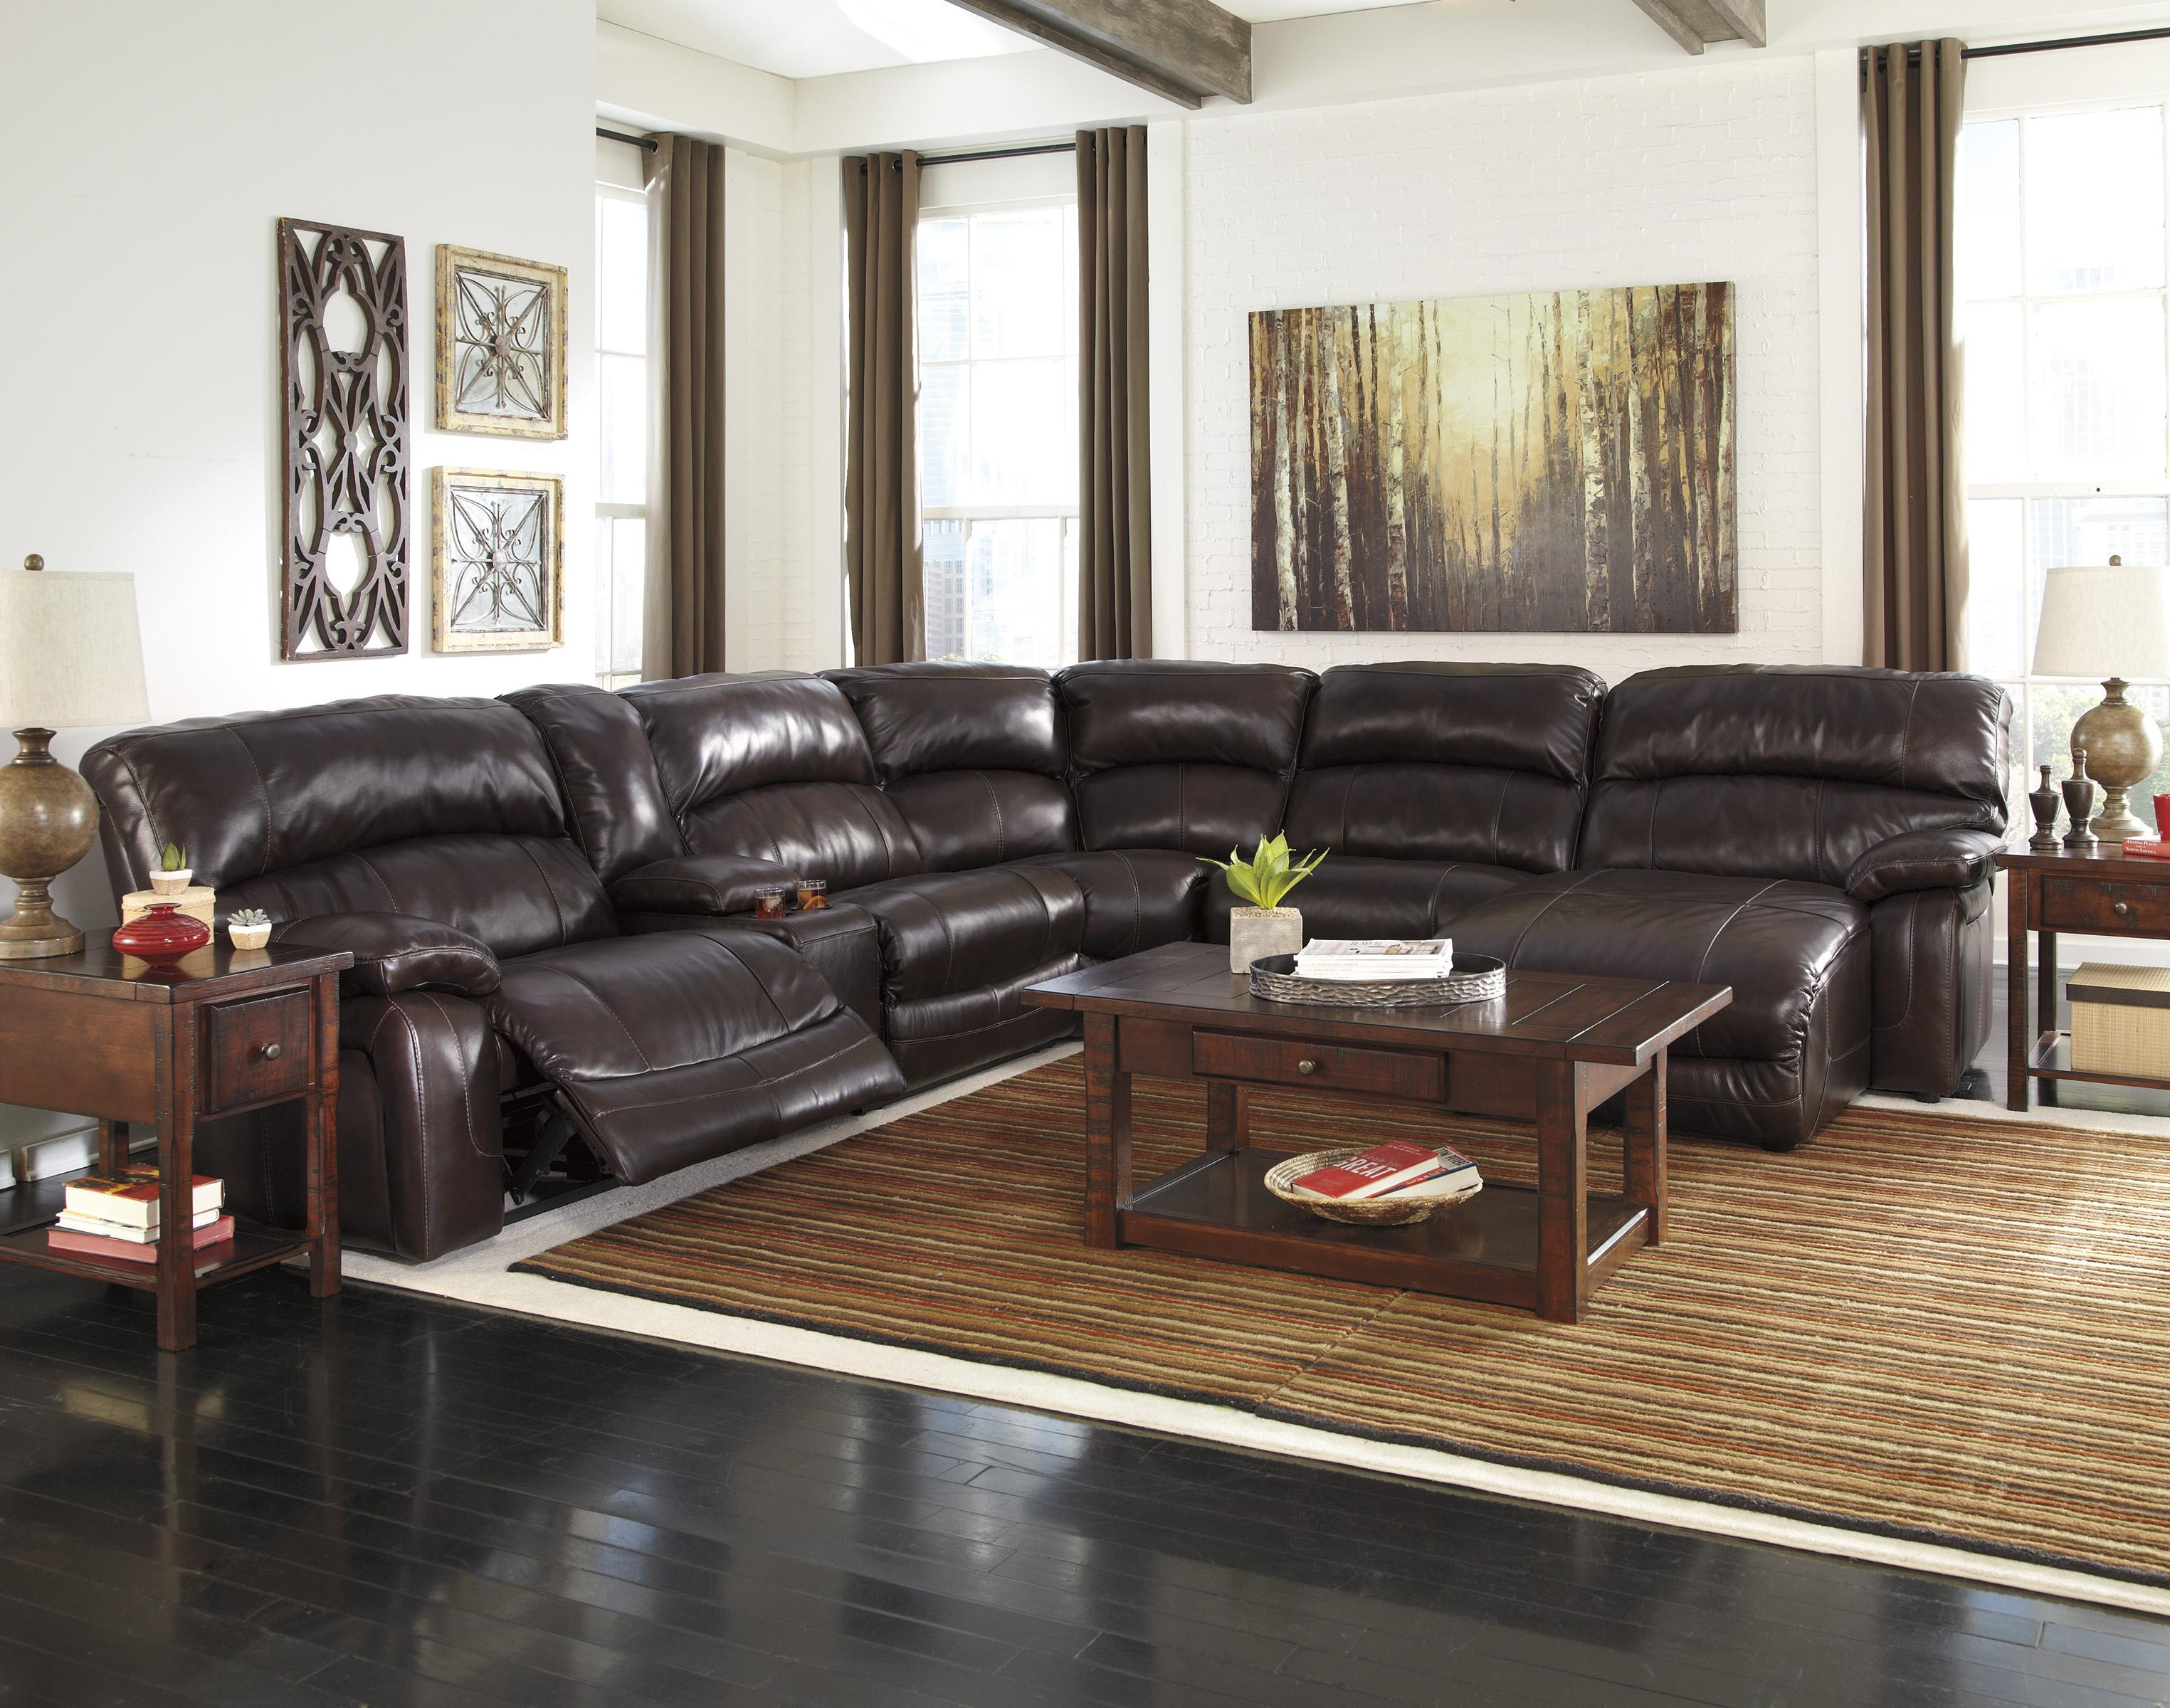 Damacio Dark Brown Reclining Sectional With Left Press Back Chaise By Signature Design By Ashley At Gallery Furniture